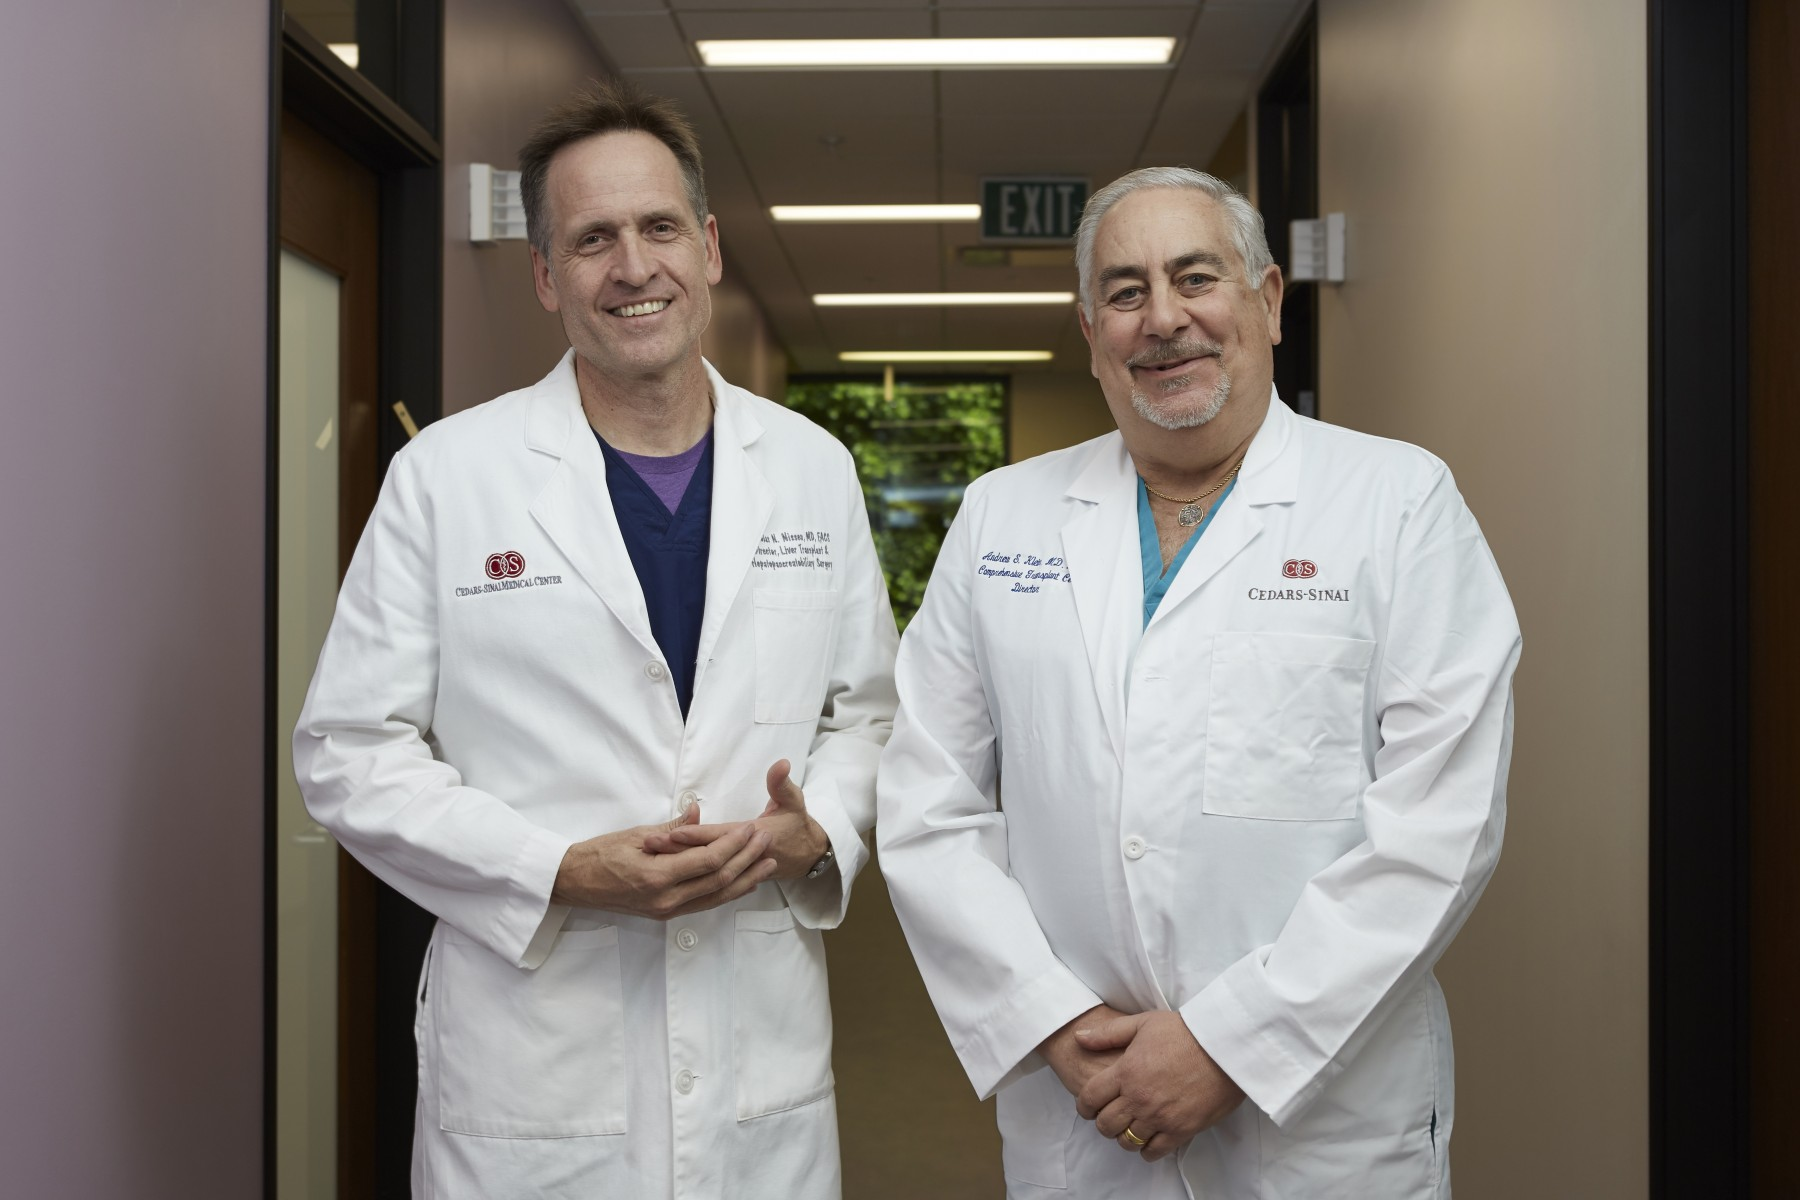 Liver surgeons Nicholas Nissen, MD, and Andrew Klein, MD. Photo by Cedars-Sinai.